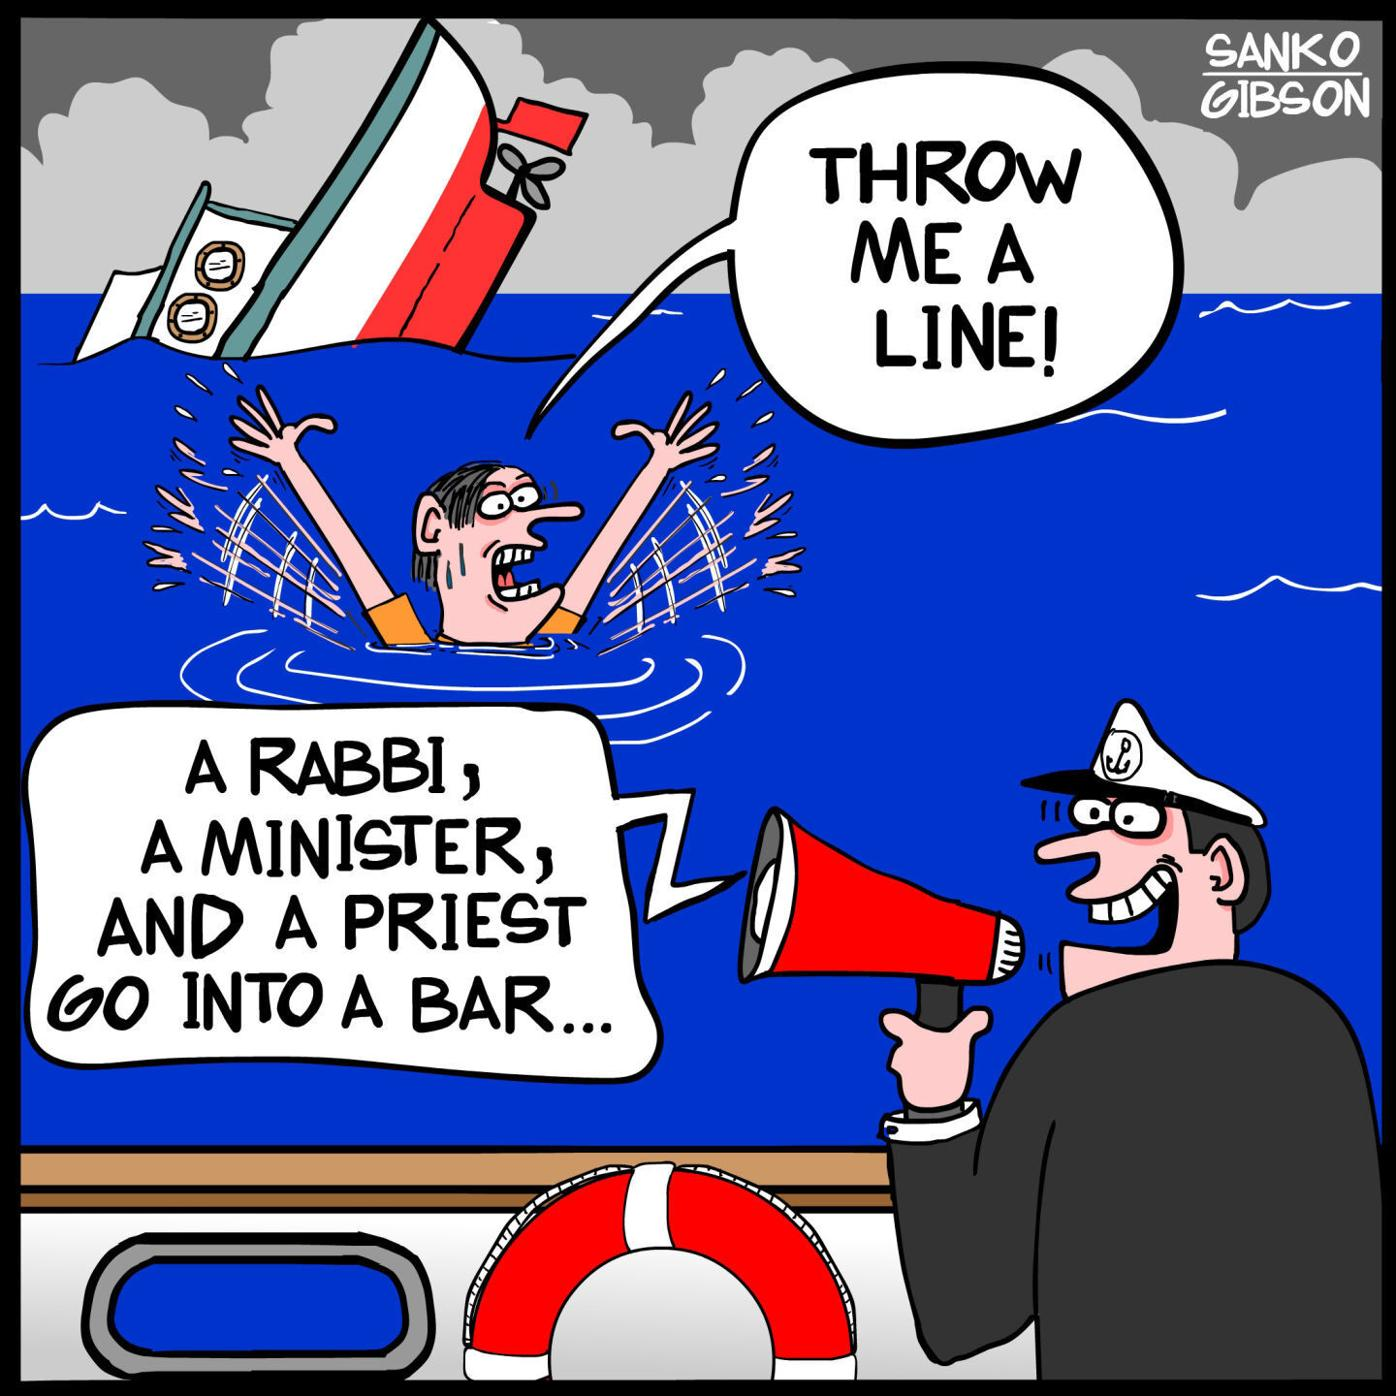 Caption throws a line to a drowning man in a John Sanko cartoon